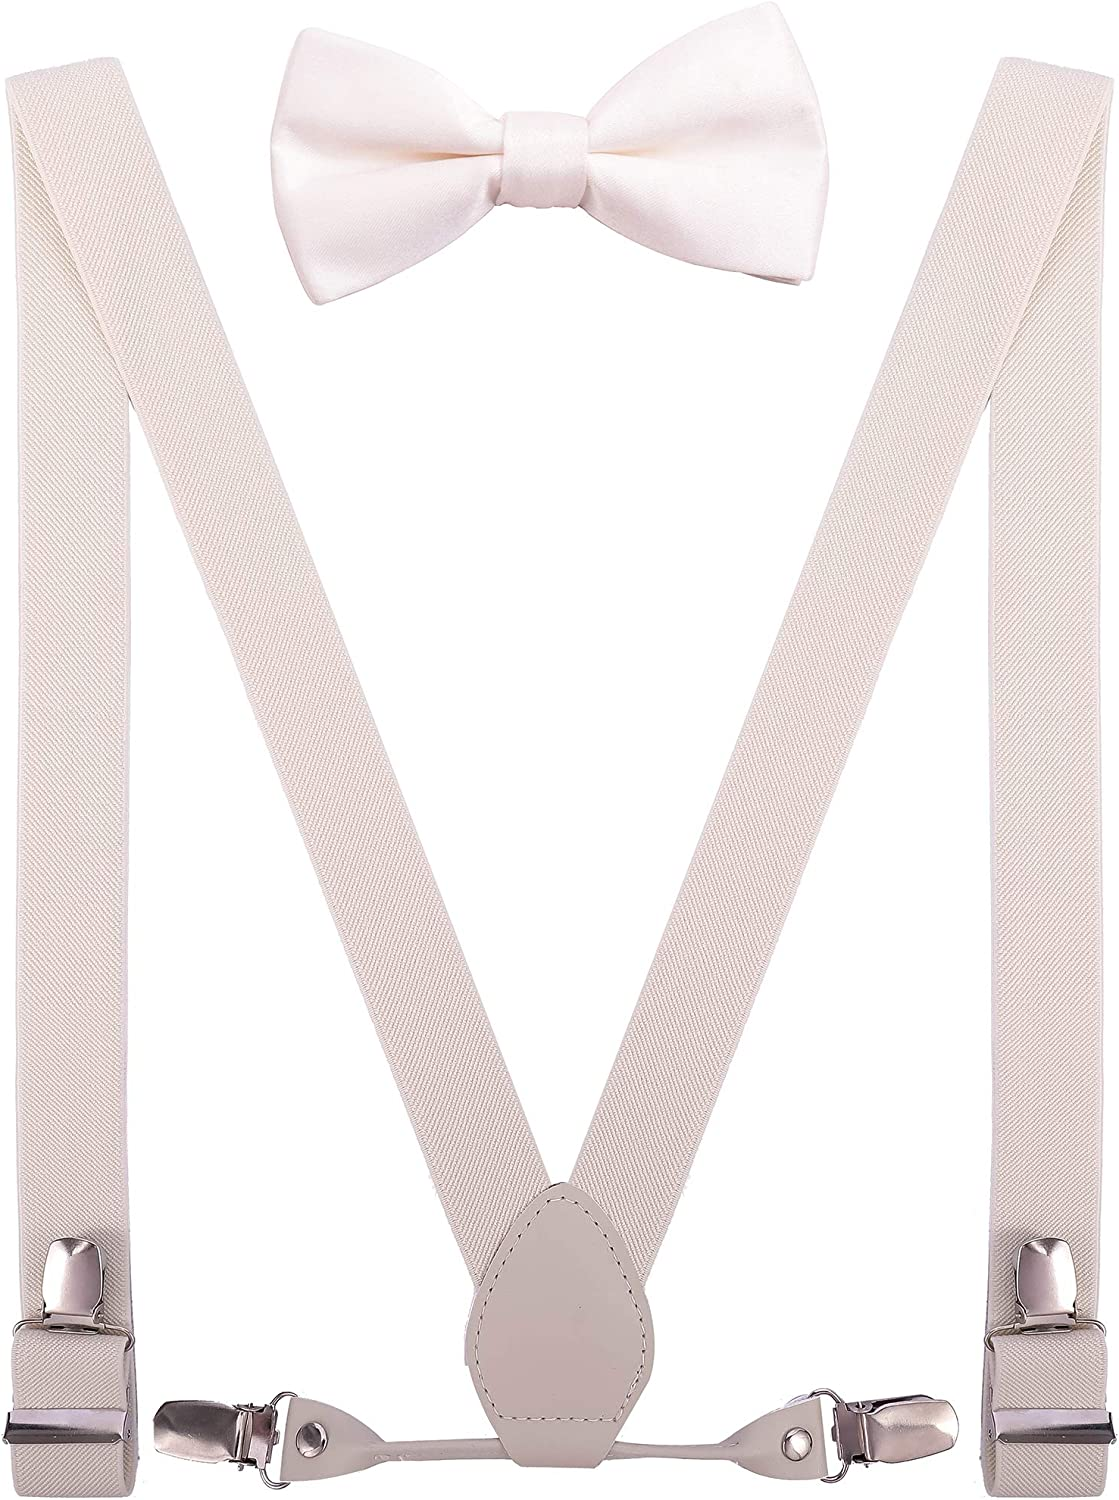 YJDS Boys Mens Suspenders and Bow Tie Set Strong Clips with White Leather